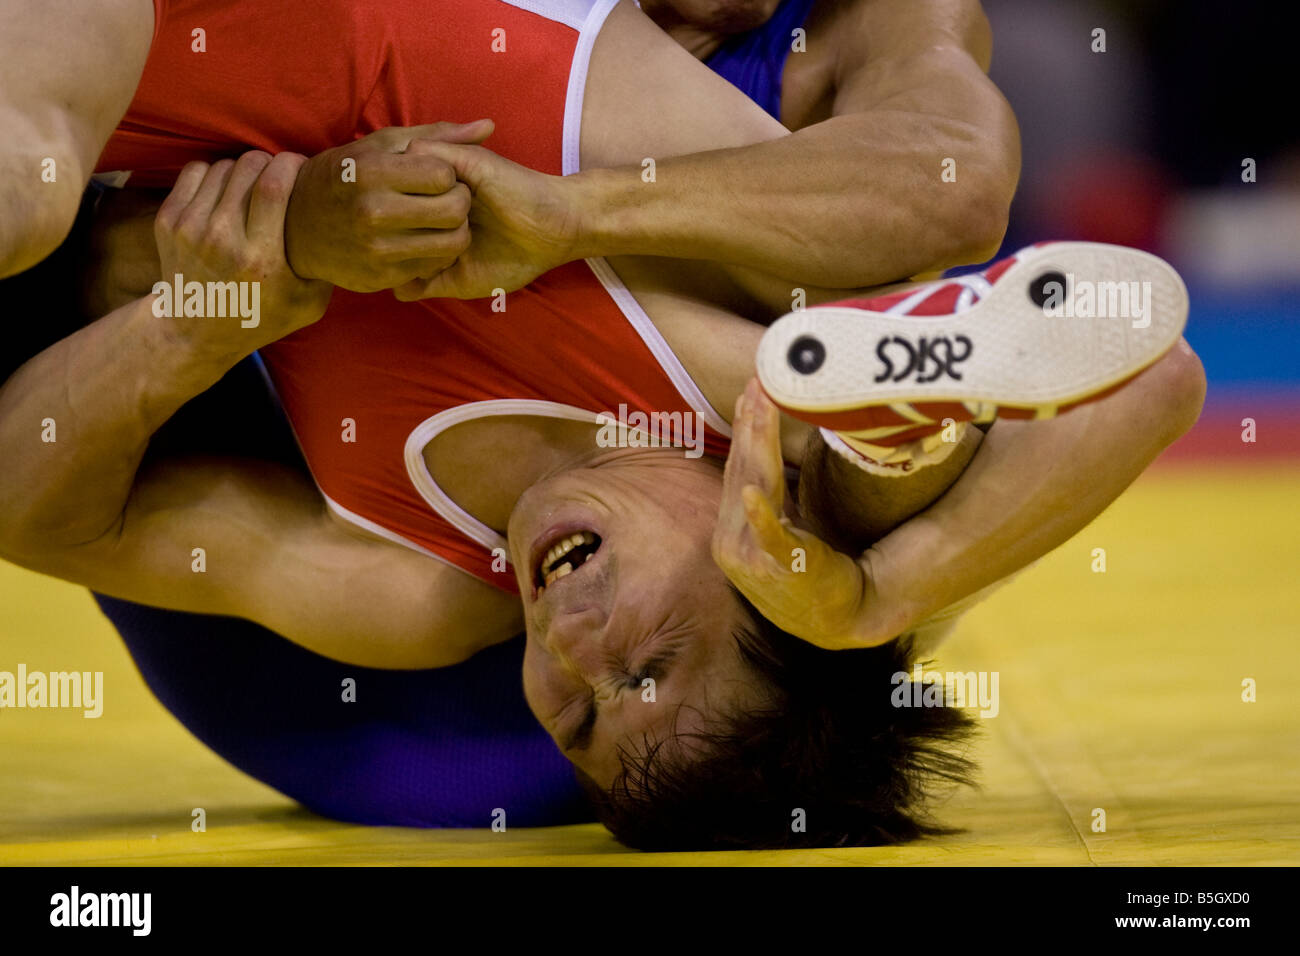 Kenichi Yumoto JPN L competing against Vitaly Koryakin TJK in the 60kg freestyle wrestling 1 8 final event at the - Stock Image